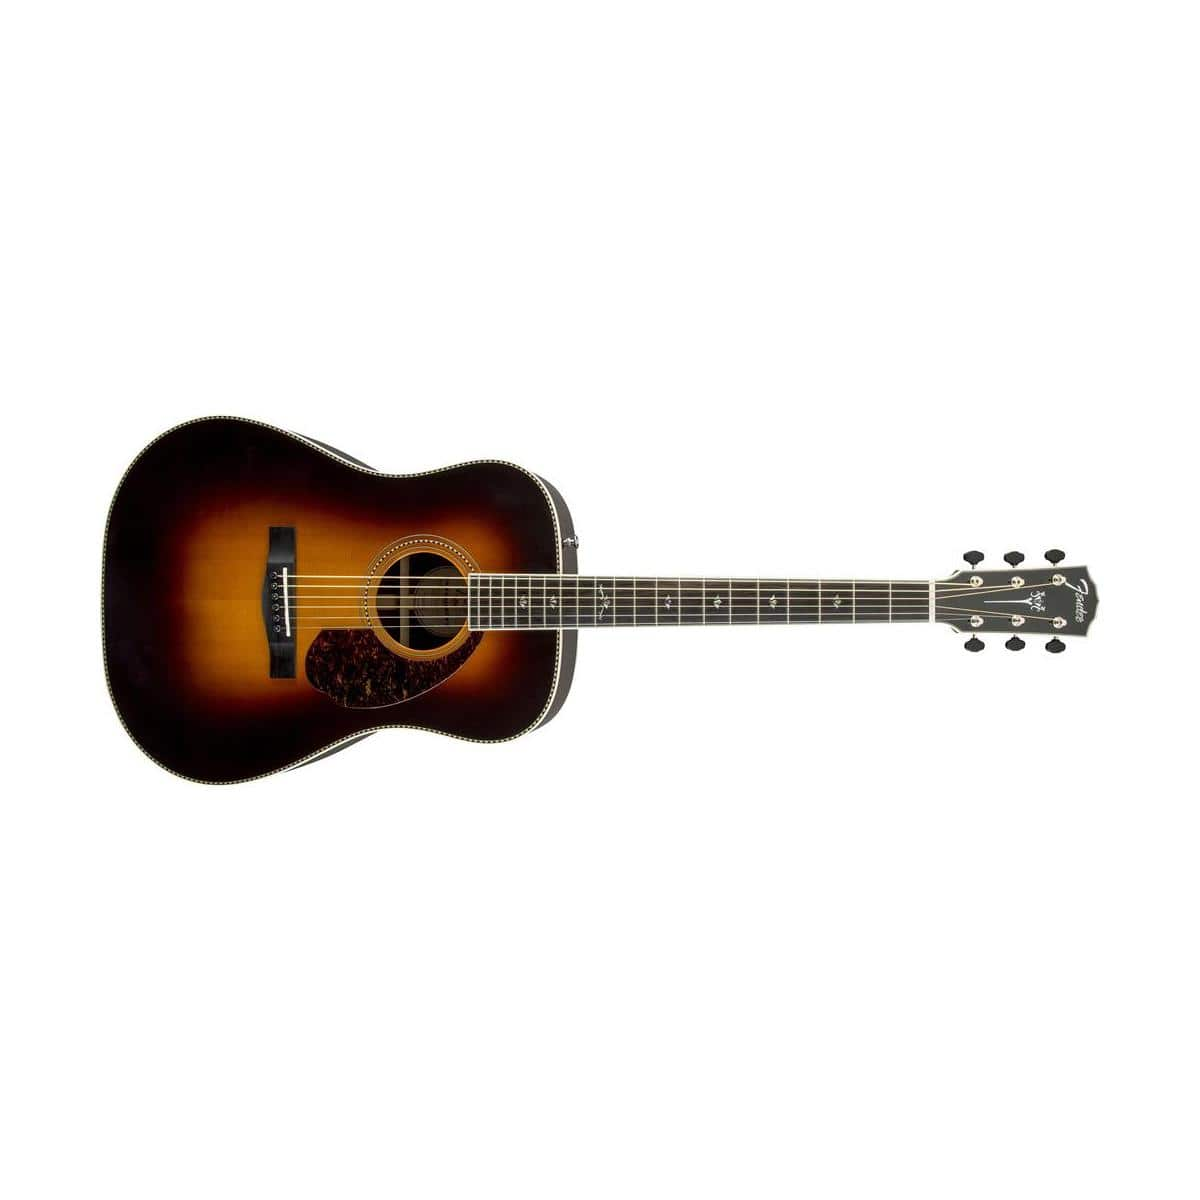 Fender Paramount Deluxe Dreadnought Acoustic Guitar: PM-1 or PM-3 $350 + Free Shipping